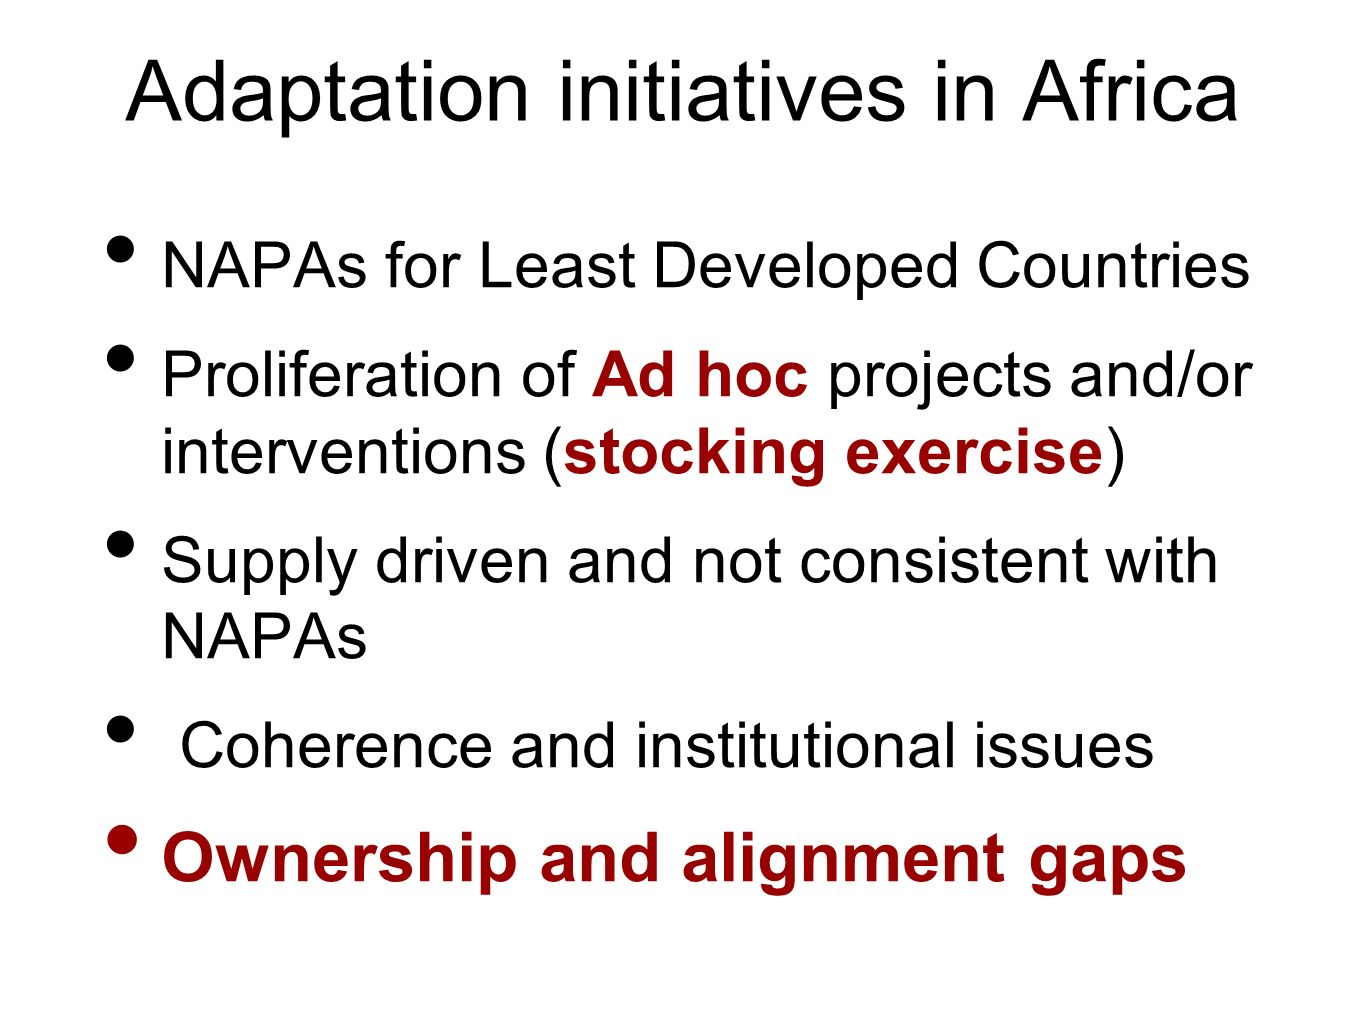 Adaptation initiatives in Africa NAPAs for Least Developed Countries Proliferation of Ad hoc projects and/or interventions (stocking exercise) Supply driven and not consistent with NAPAs Coherence and institutional issues Ownership and alignment gaps